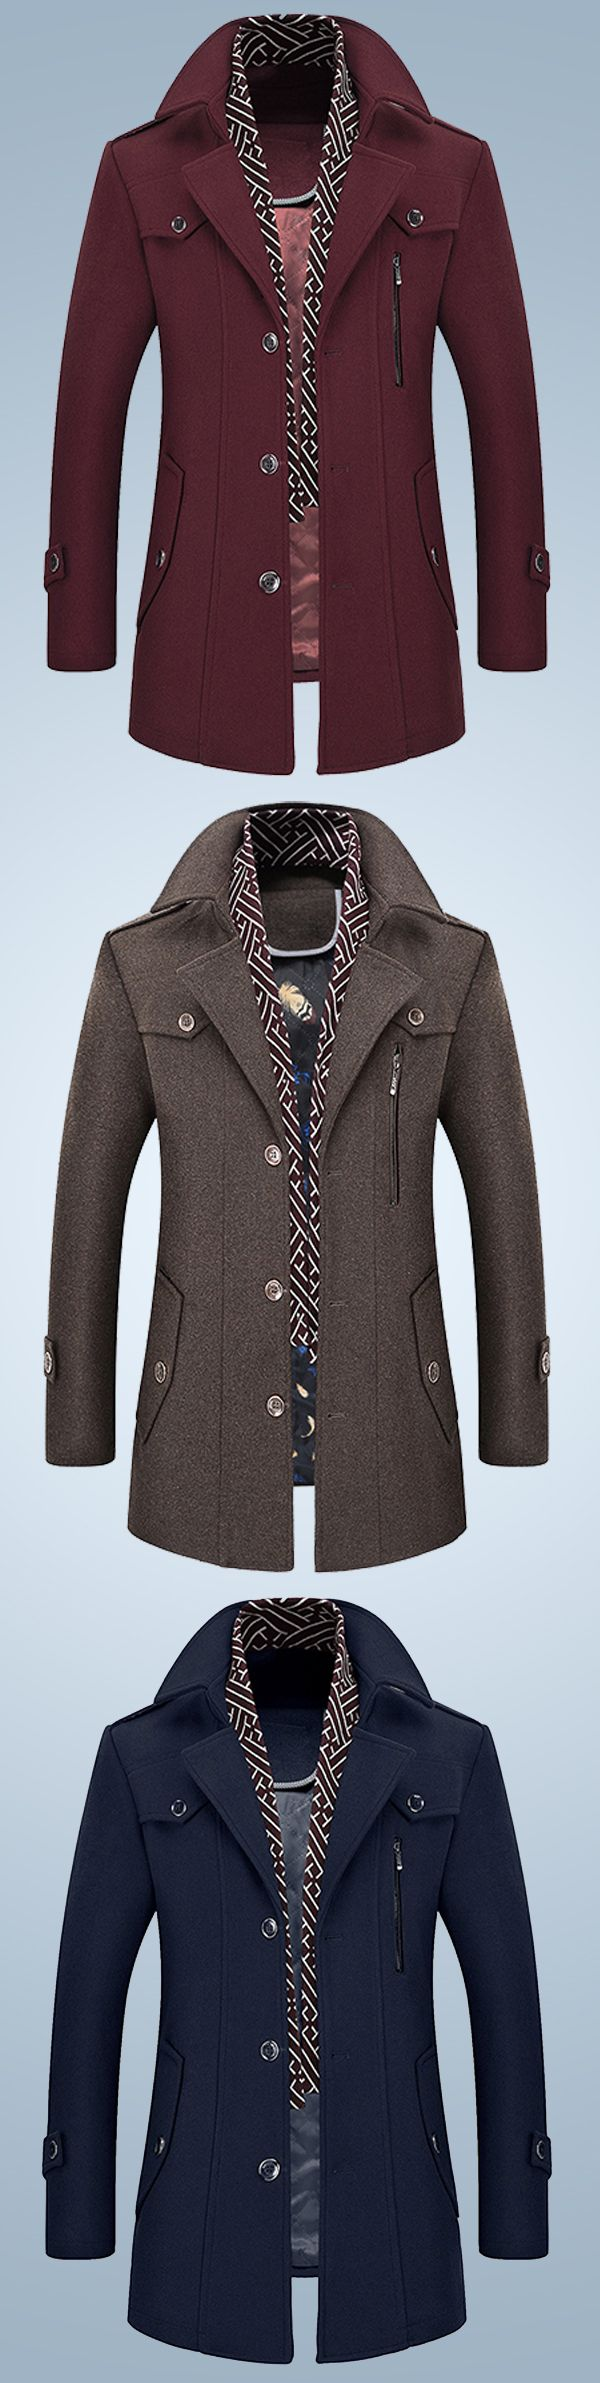 US$84.63 + Free shipping. Size: S~XL. Color: Wine Red, Navy, Brown, Grey. Fall in love with casual and fashion style! Men's Thick Wool Detachable Scarf Trench Coat Casual Business Pea Coat Top Coats. #formal #men